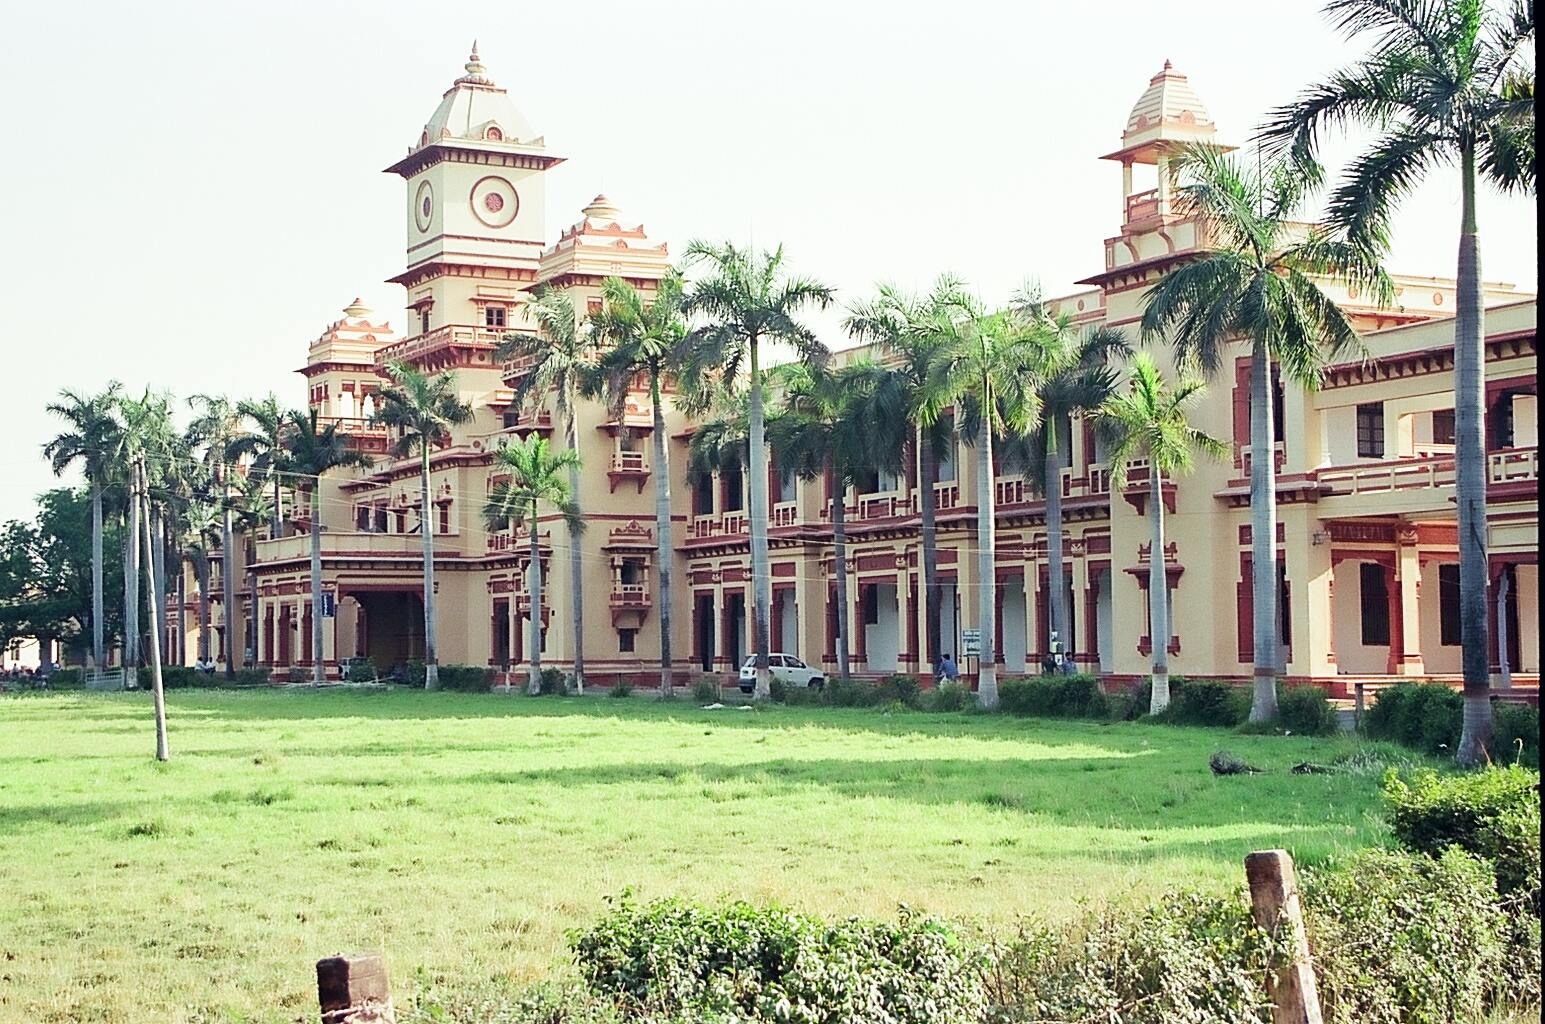 thewire.in - Angellica Aribam - At BHU, Women are Being Restricted by RSS's Chains